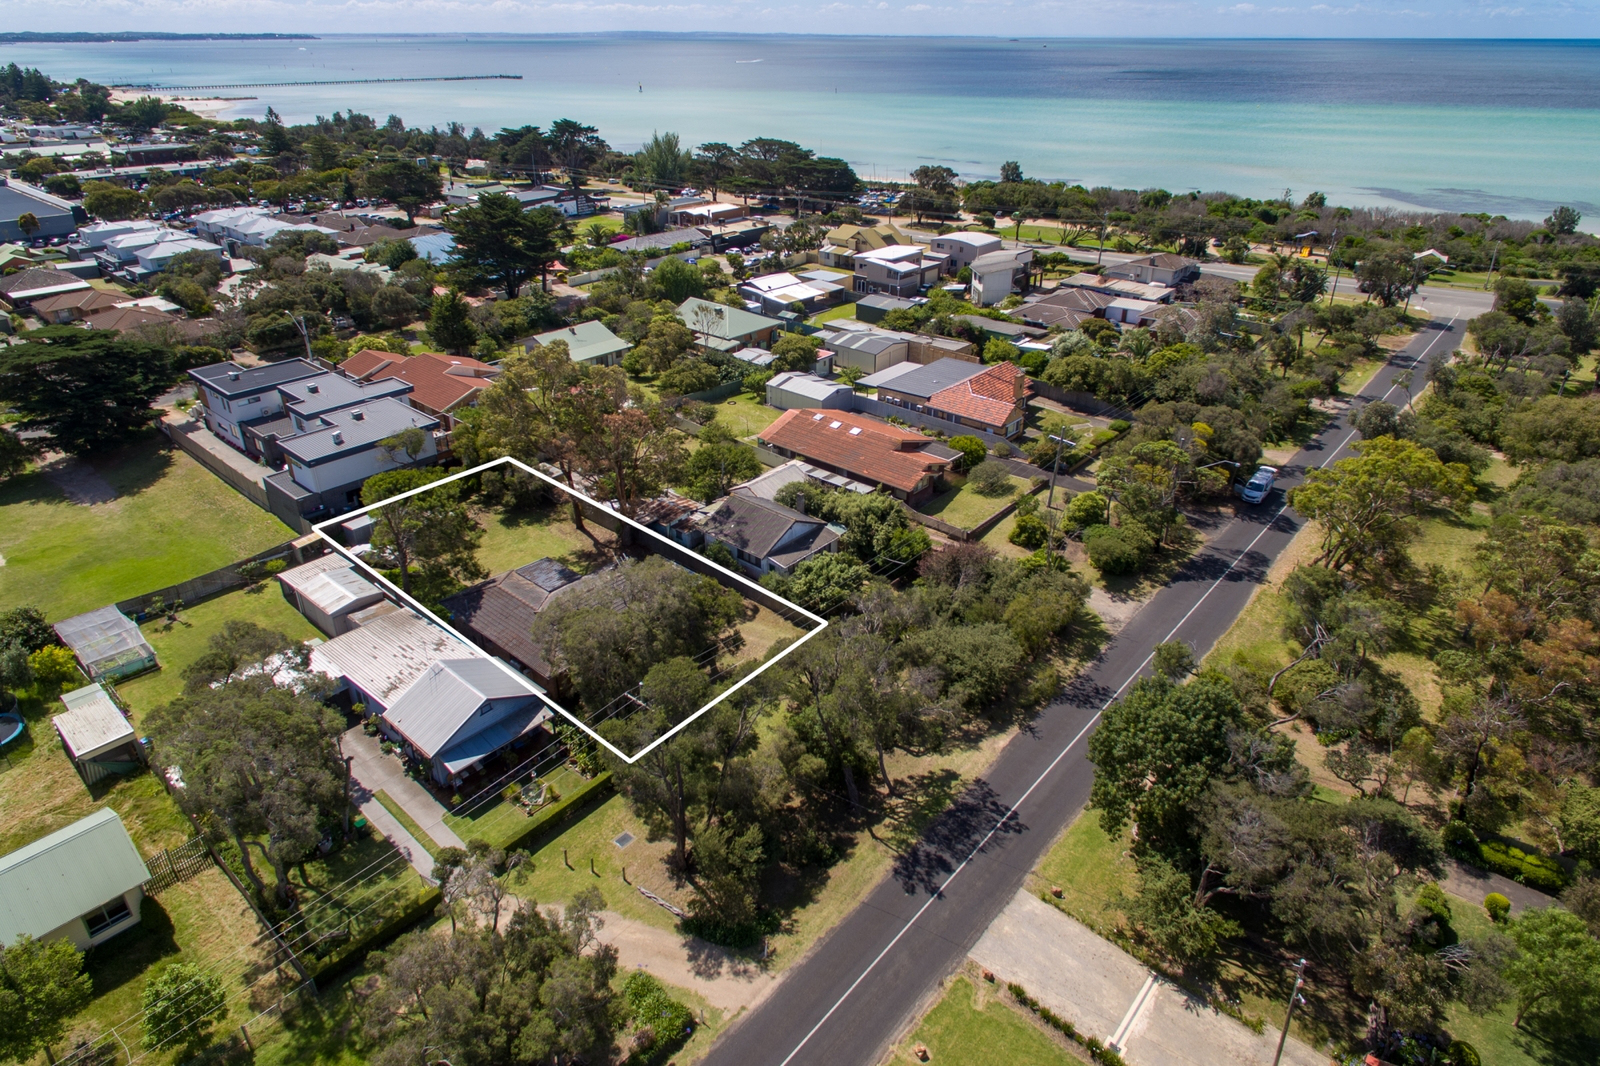 10 Government Road, Rye 3941 - Image 2